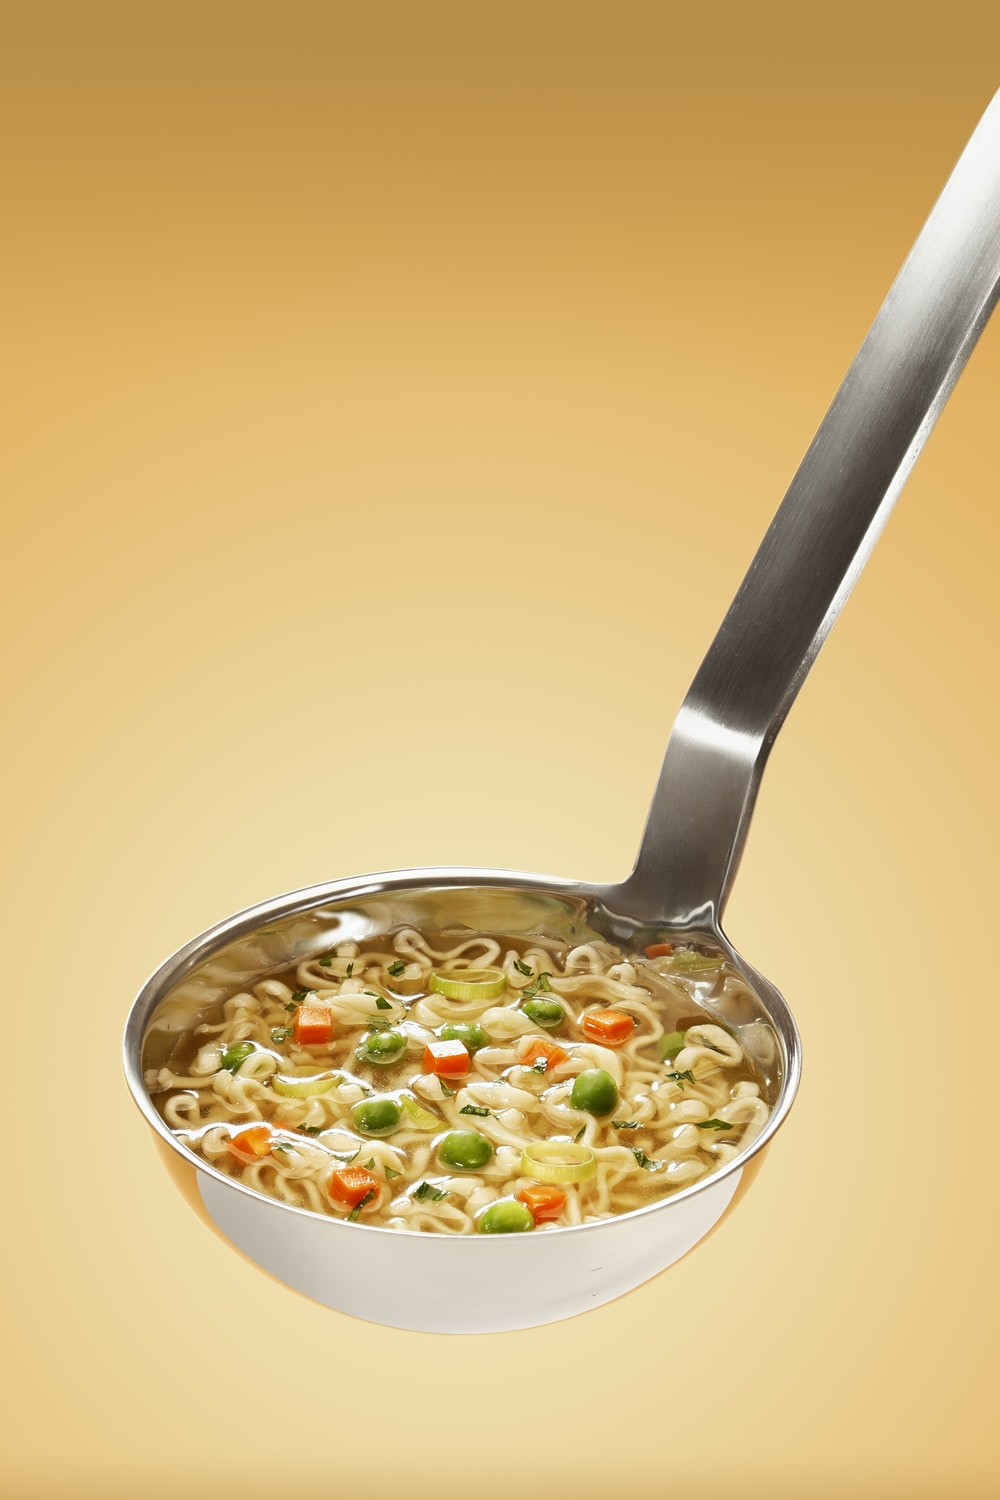 silver steel scoop with noodles